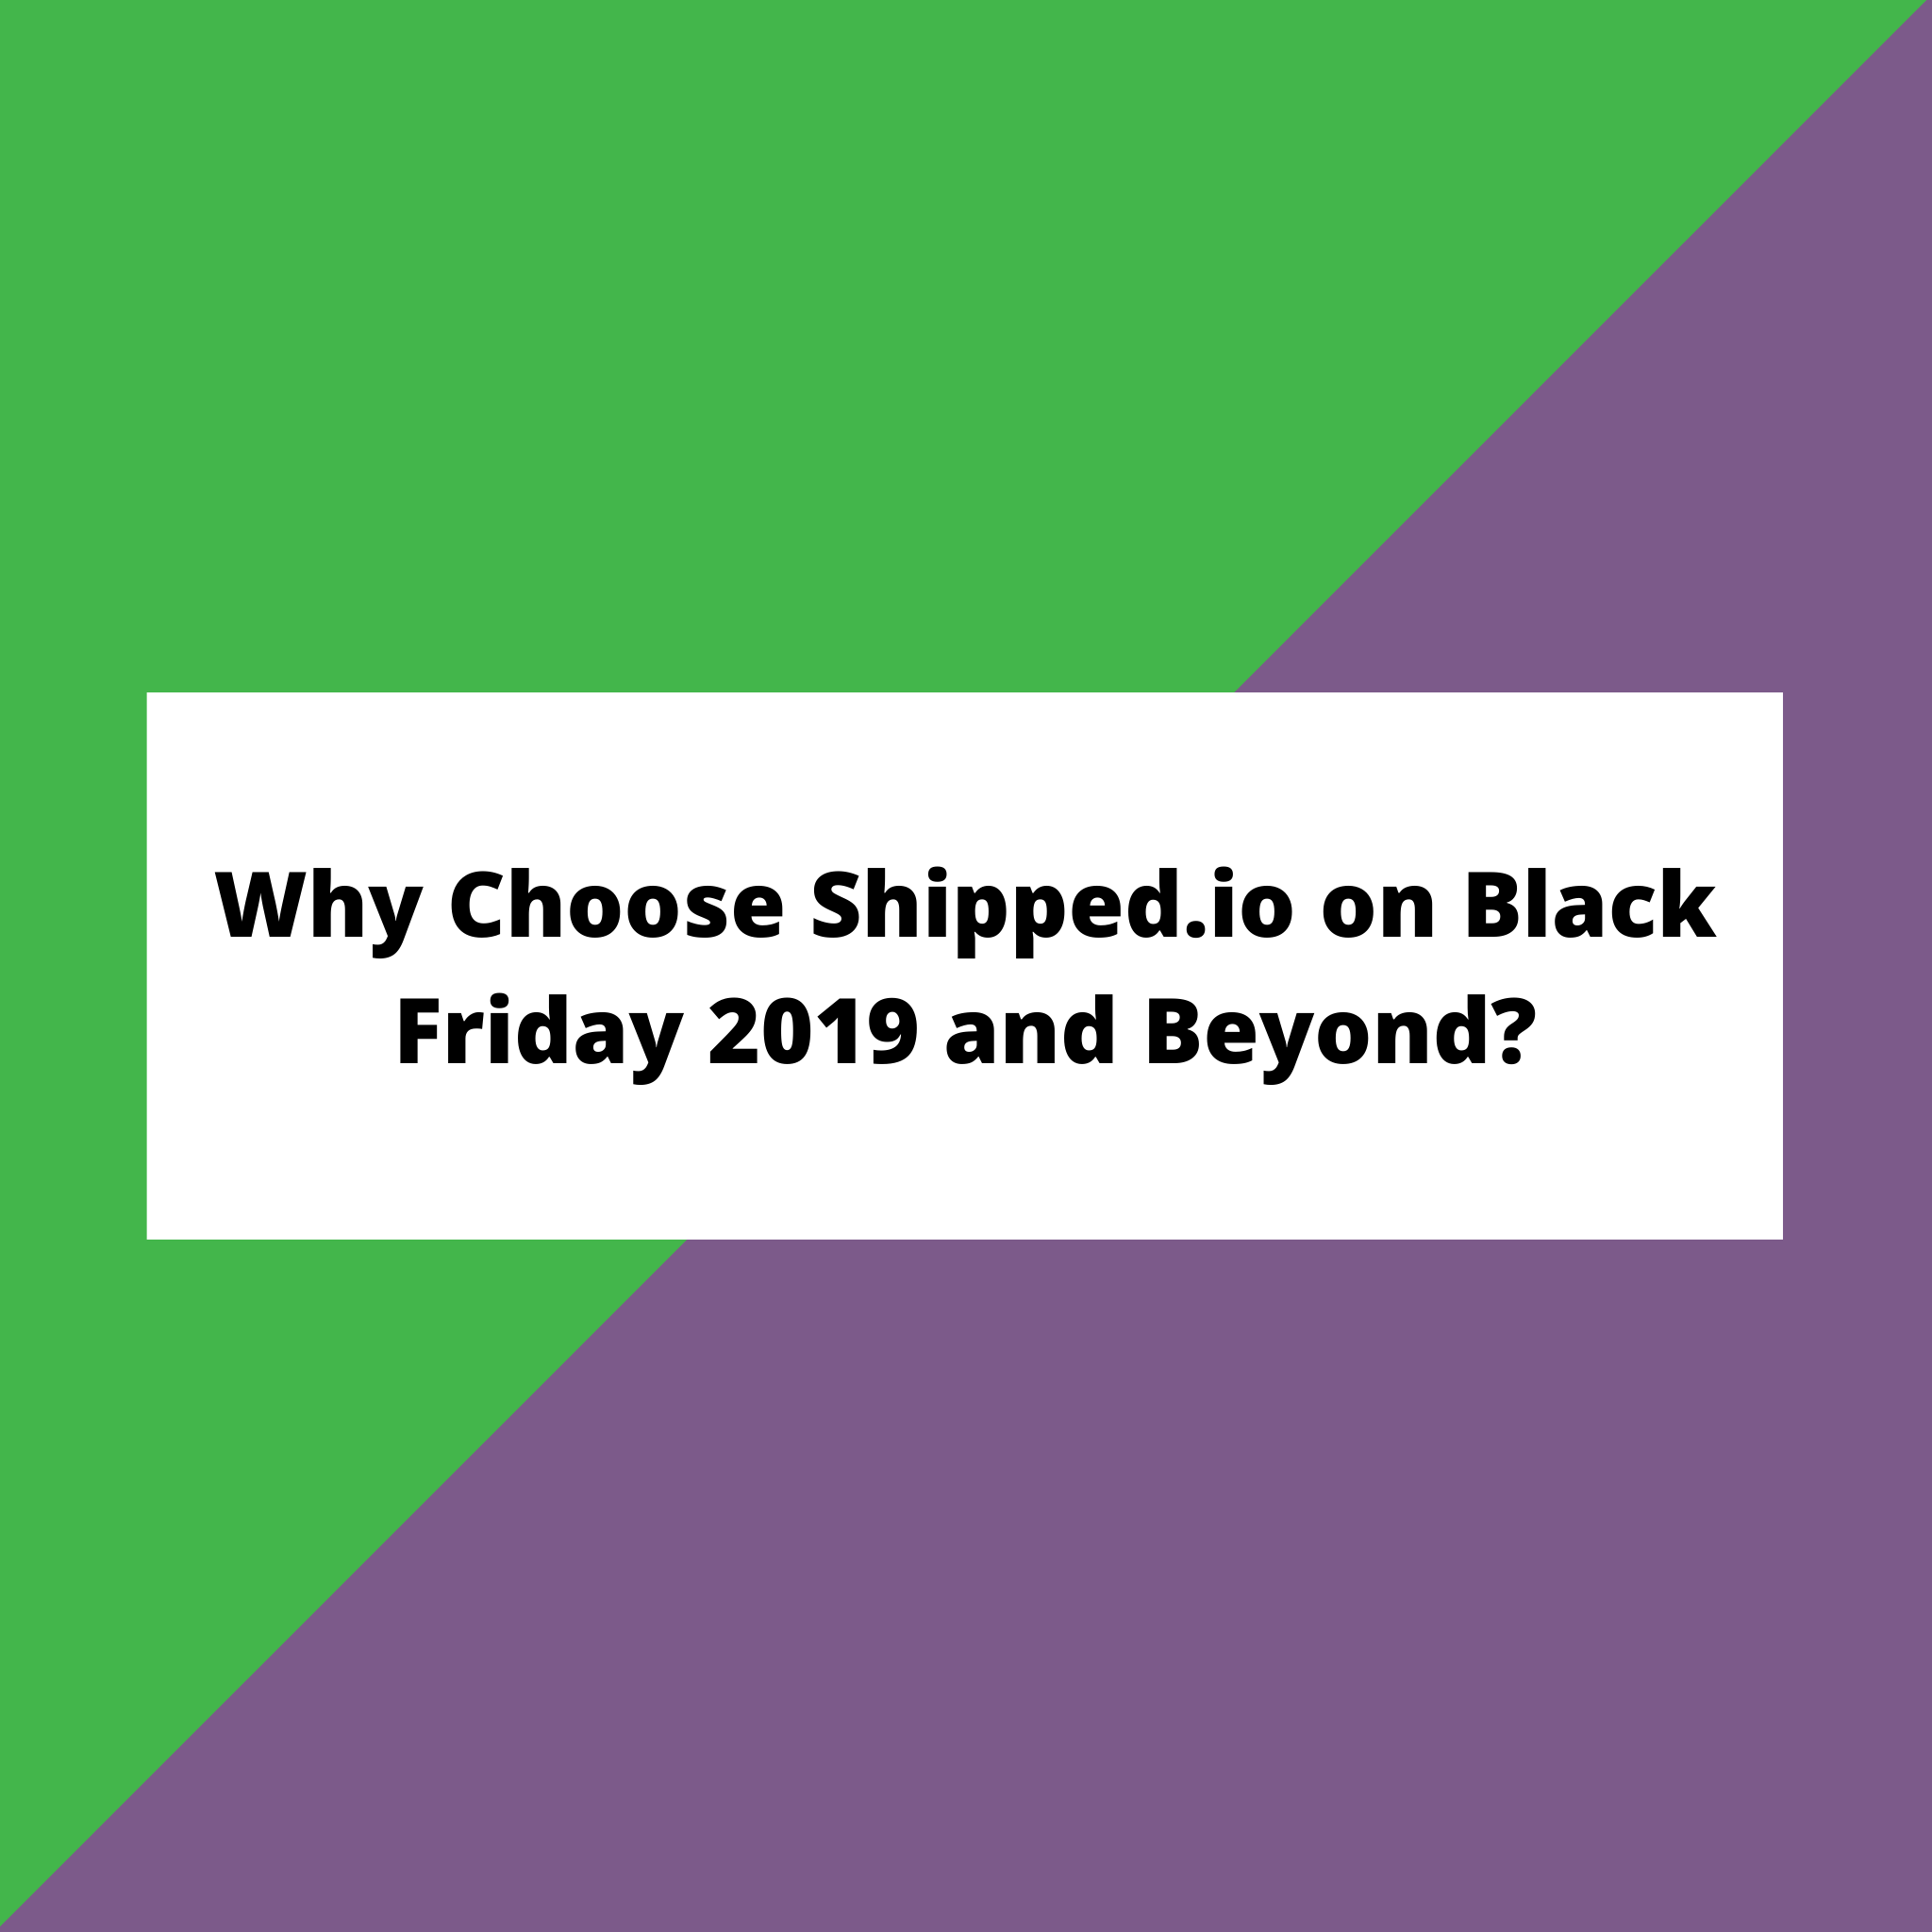 Why Choose Shipped.io on Black Friday 2019 and Beyond?